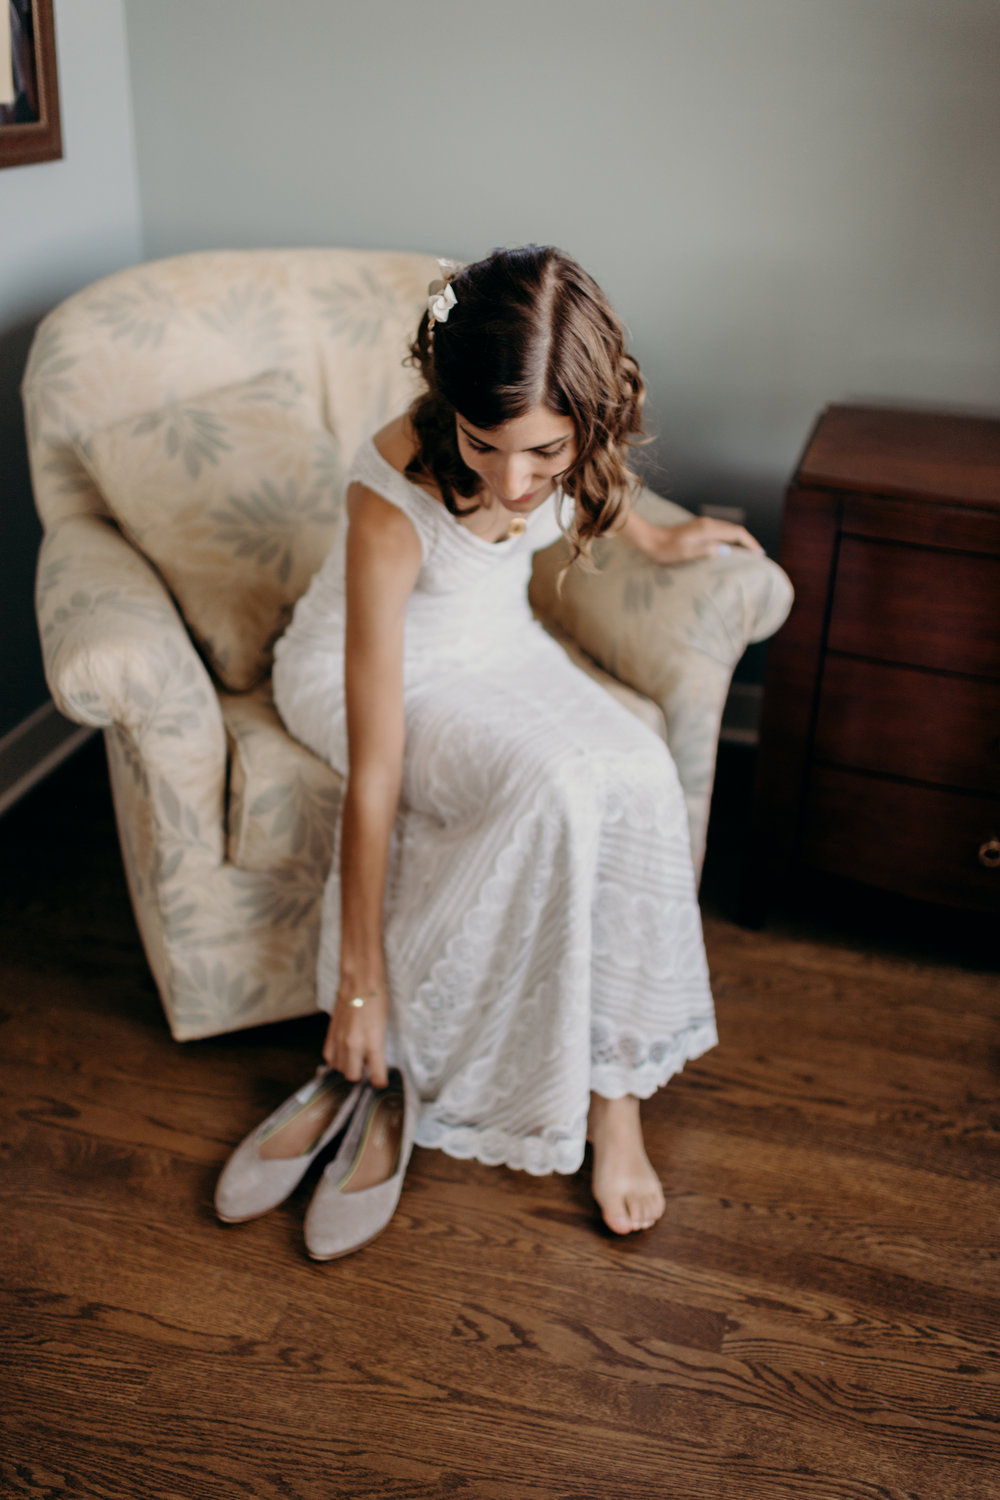 Bride sits on a chair and reaches down for her wedding shoes.